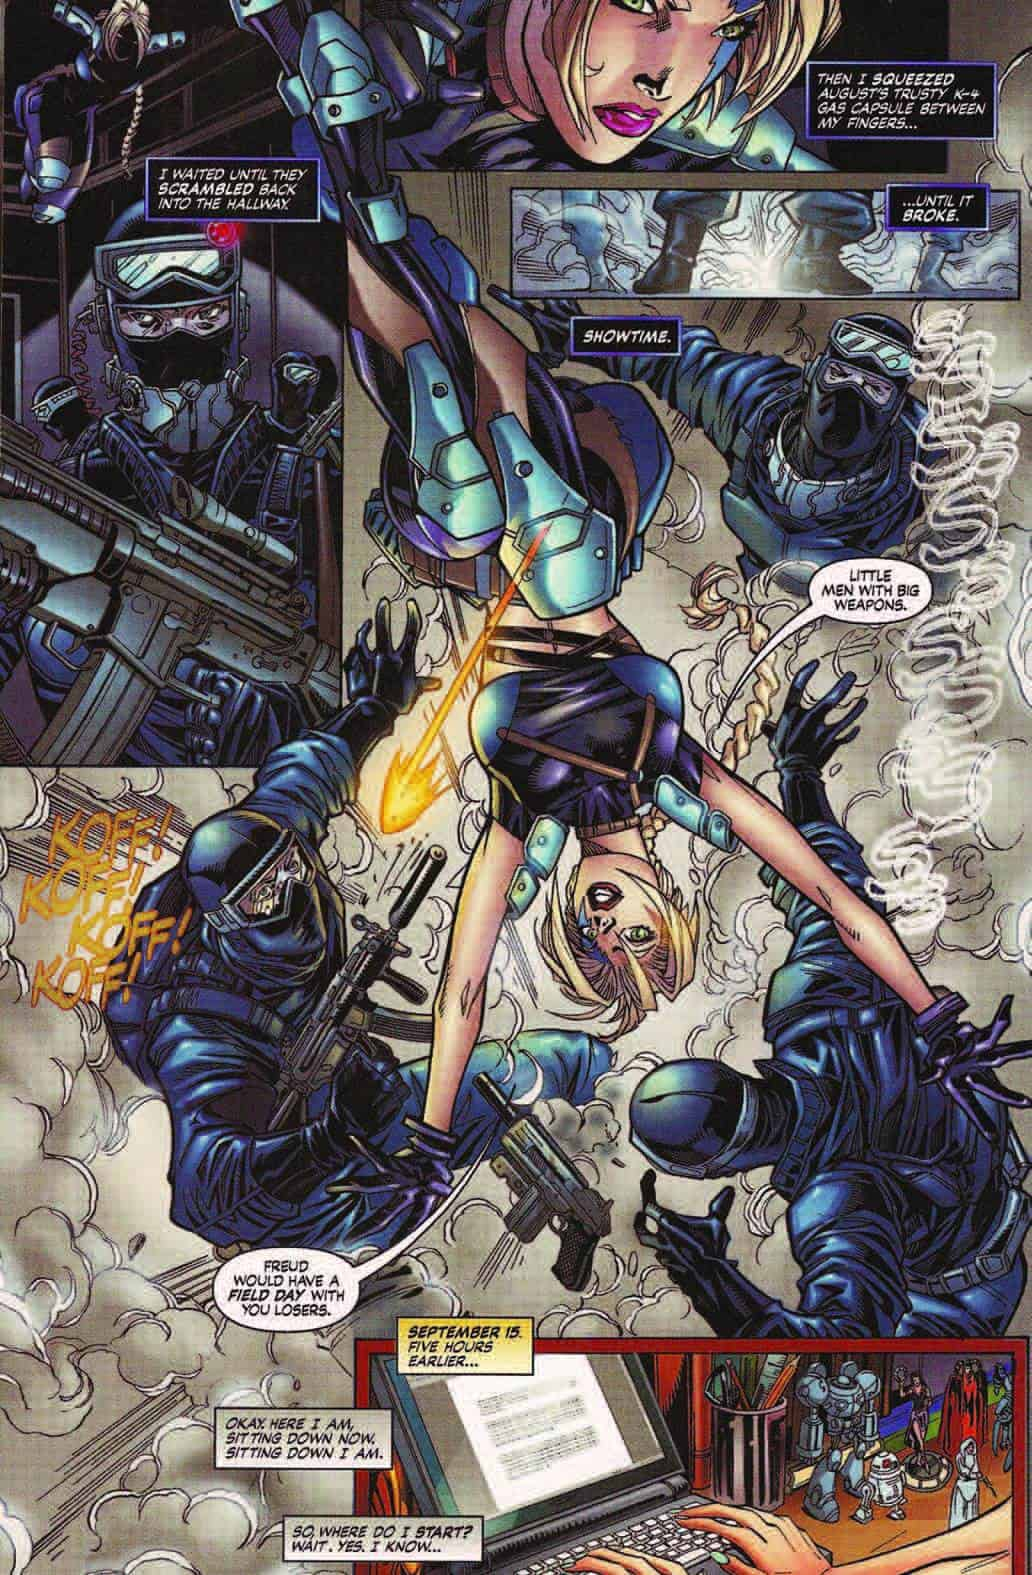 10th-Muse-Vol-1-the-Image-Comics-Run-Part-1-Image-03